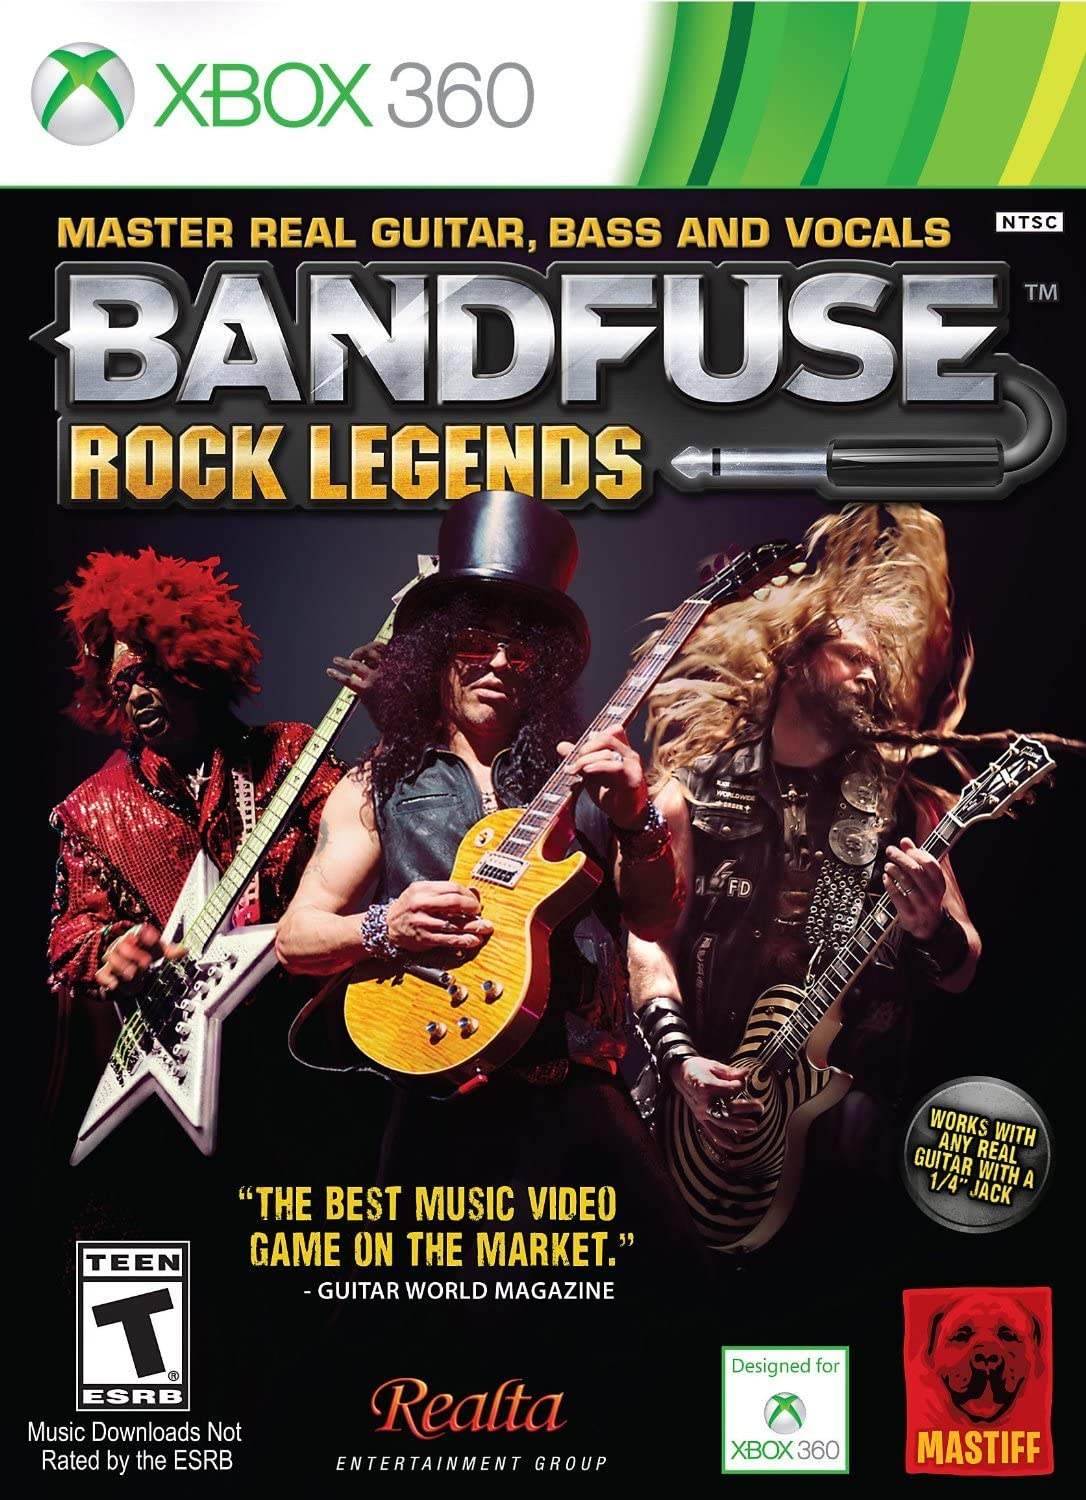 Amazon.com: BandFuse: Rock Legends (Artist Pack): Xbox 360 ... on